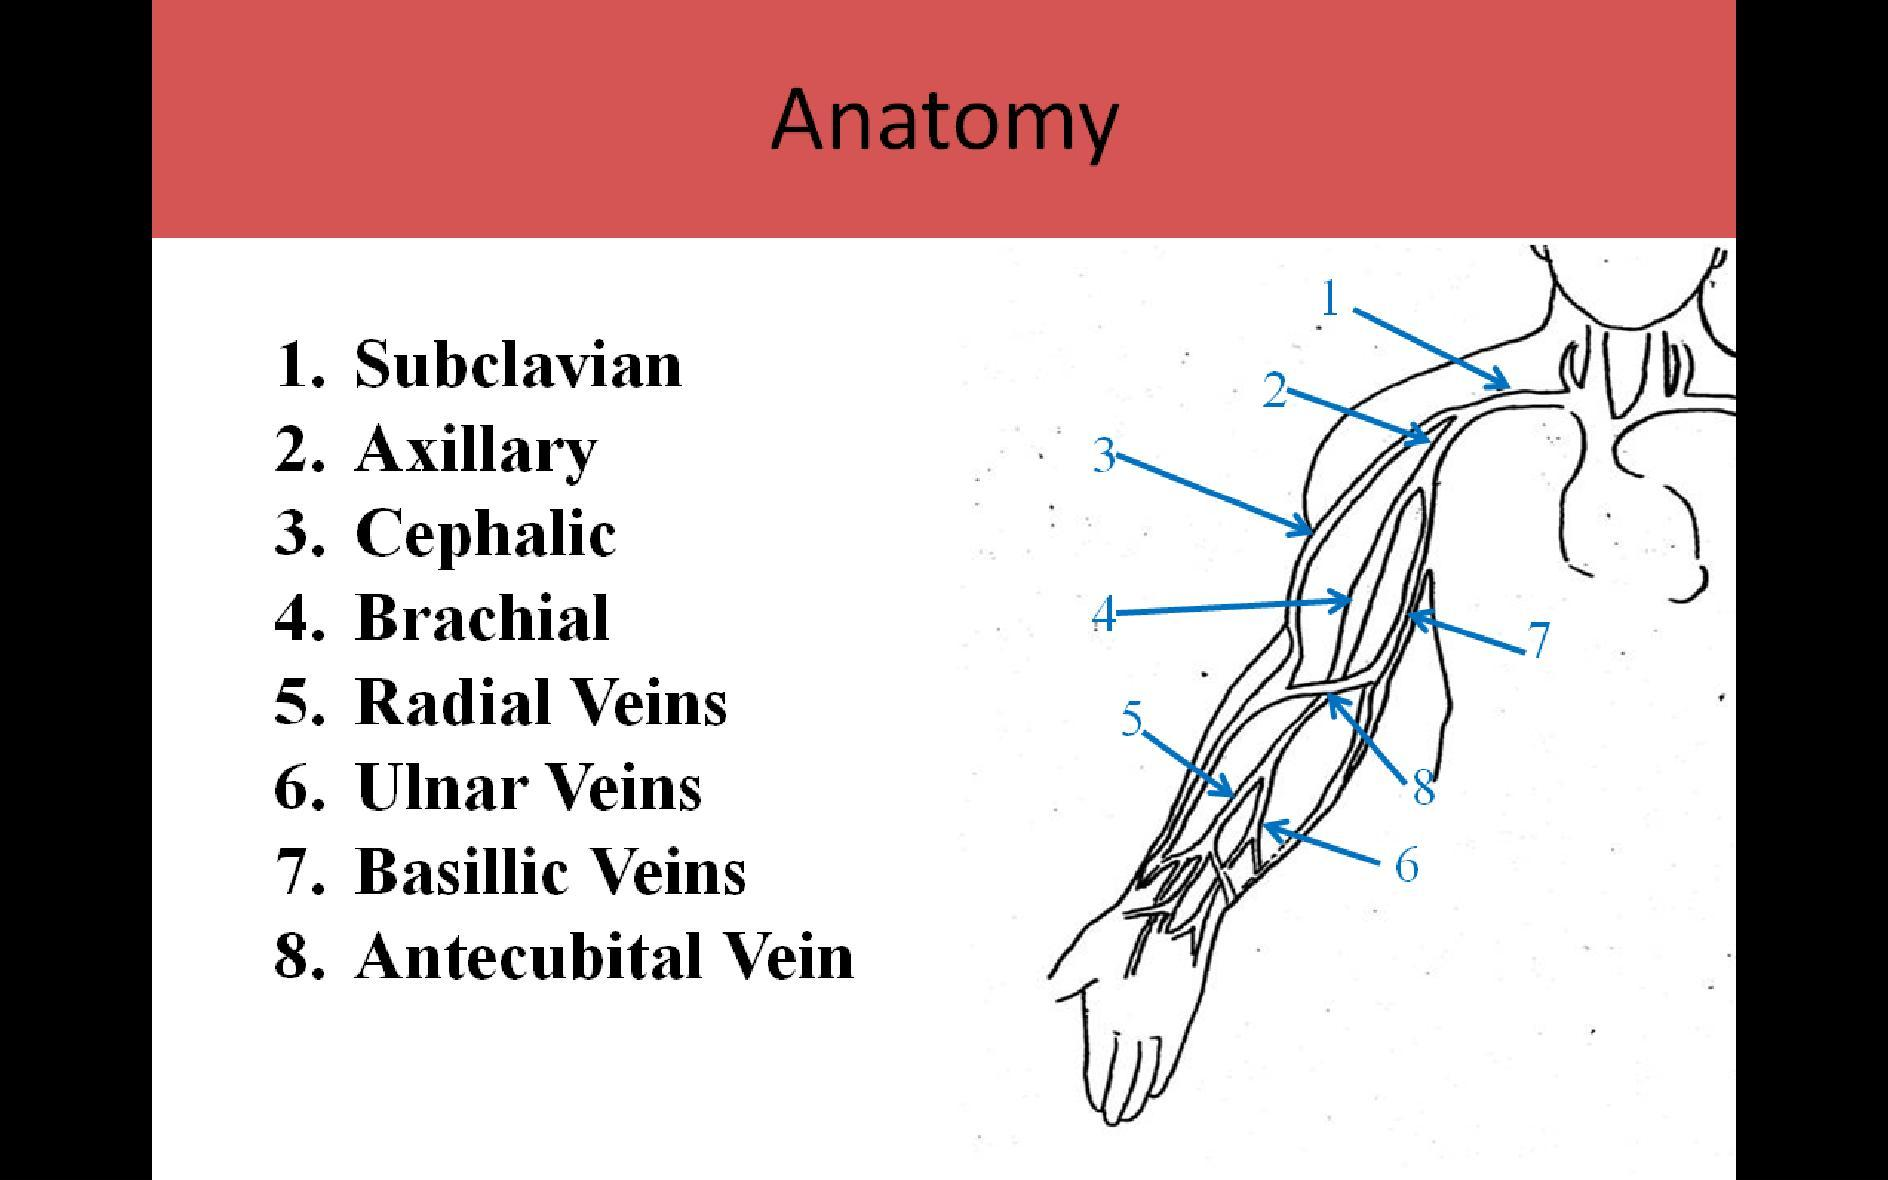 ultrasound registry review - extremity venous, Cephalic Vein